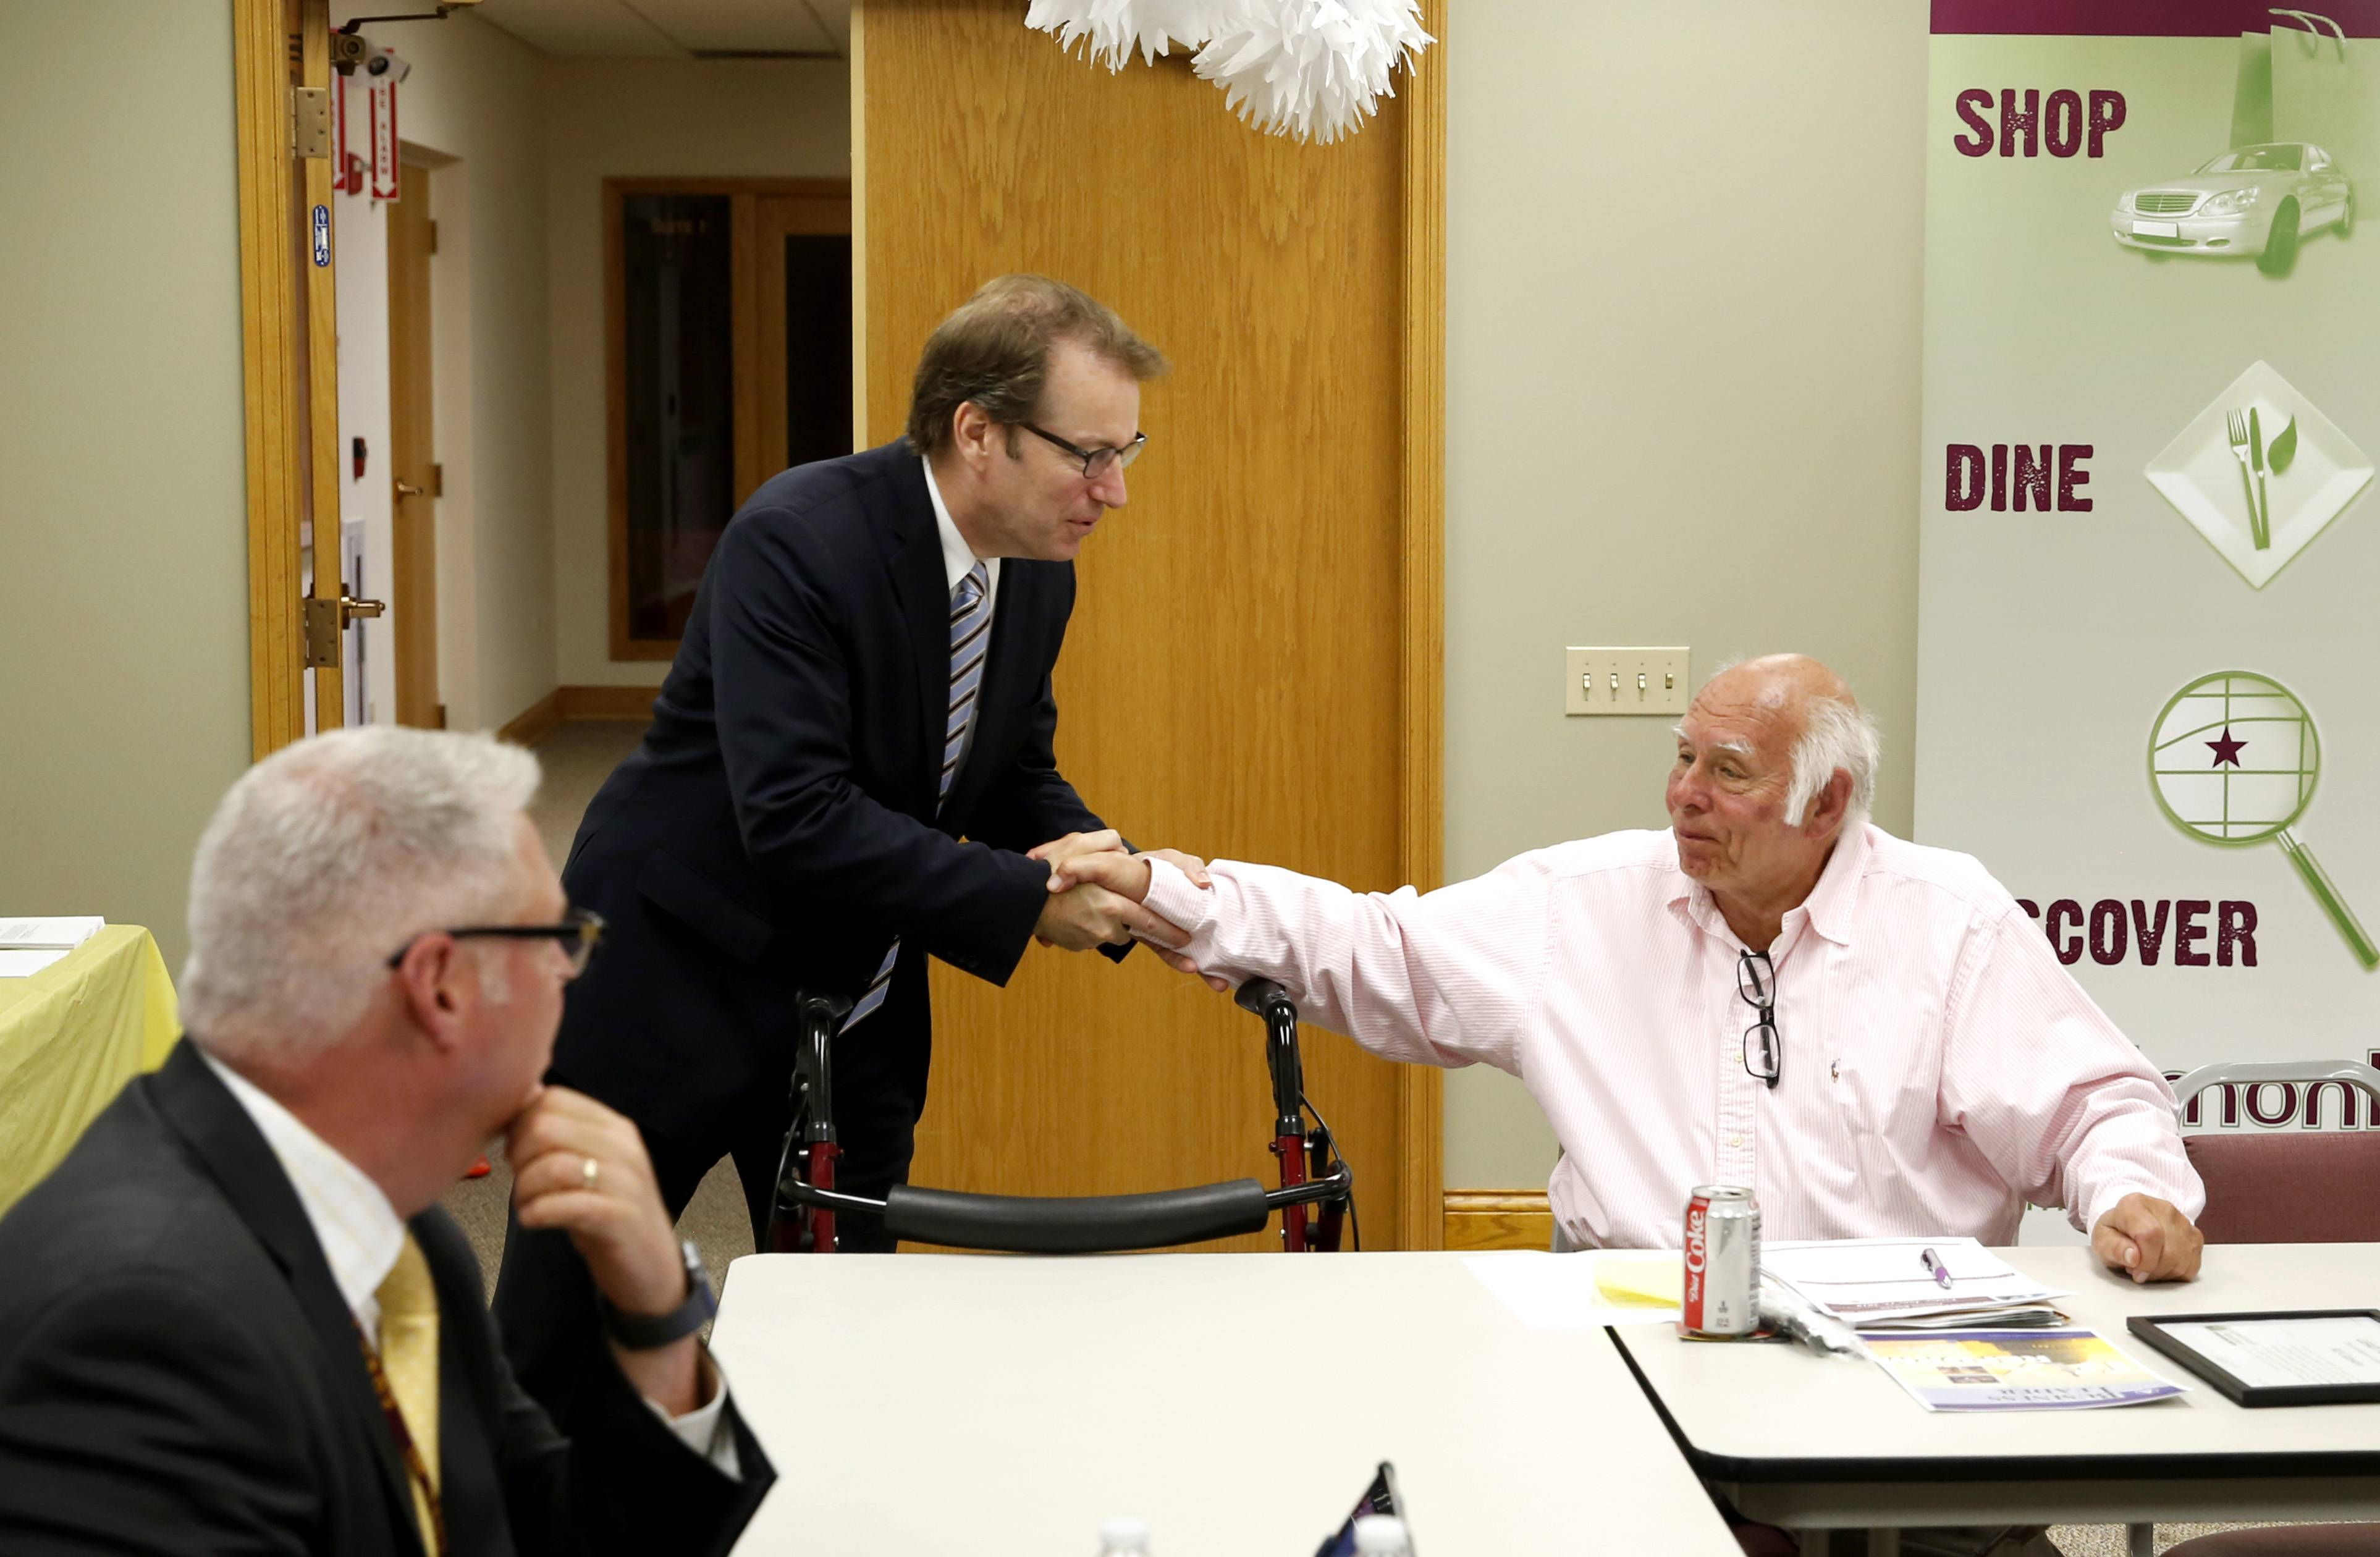 U.S. Rep. Peter Roskam greets Al Carson at the Westmont Centre for a Westmont Chamber of Commerce and Tourism Bureau roundtable, where topics included health insurance, taxes and trade relations with China.